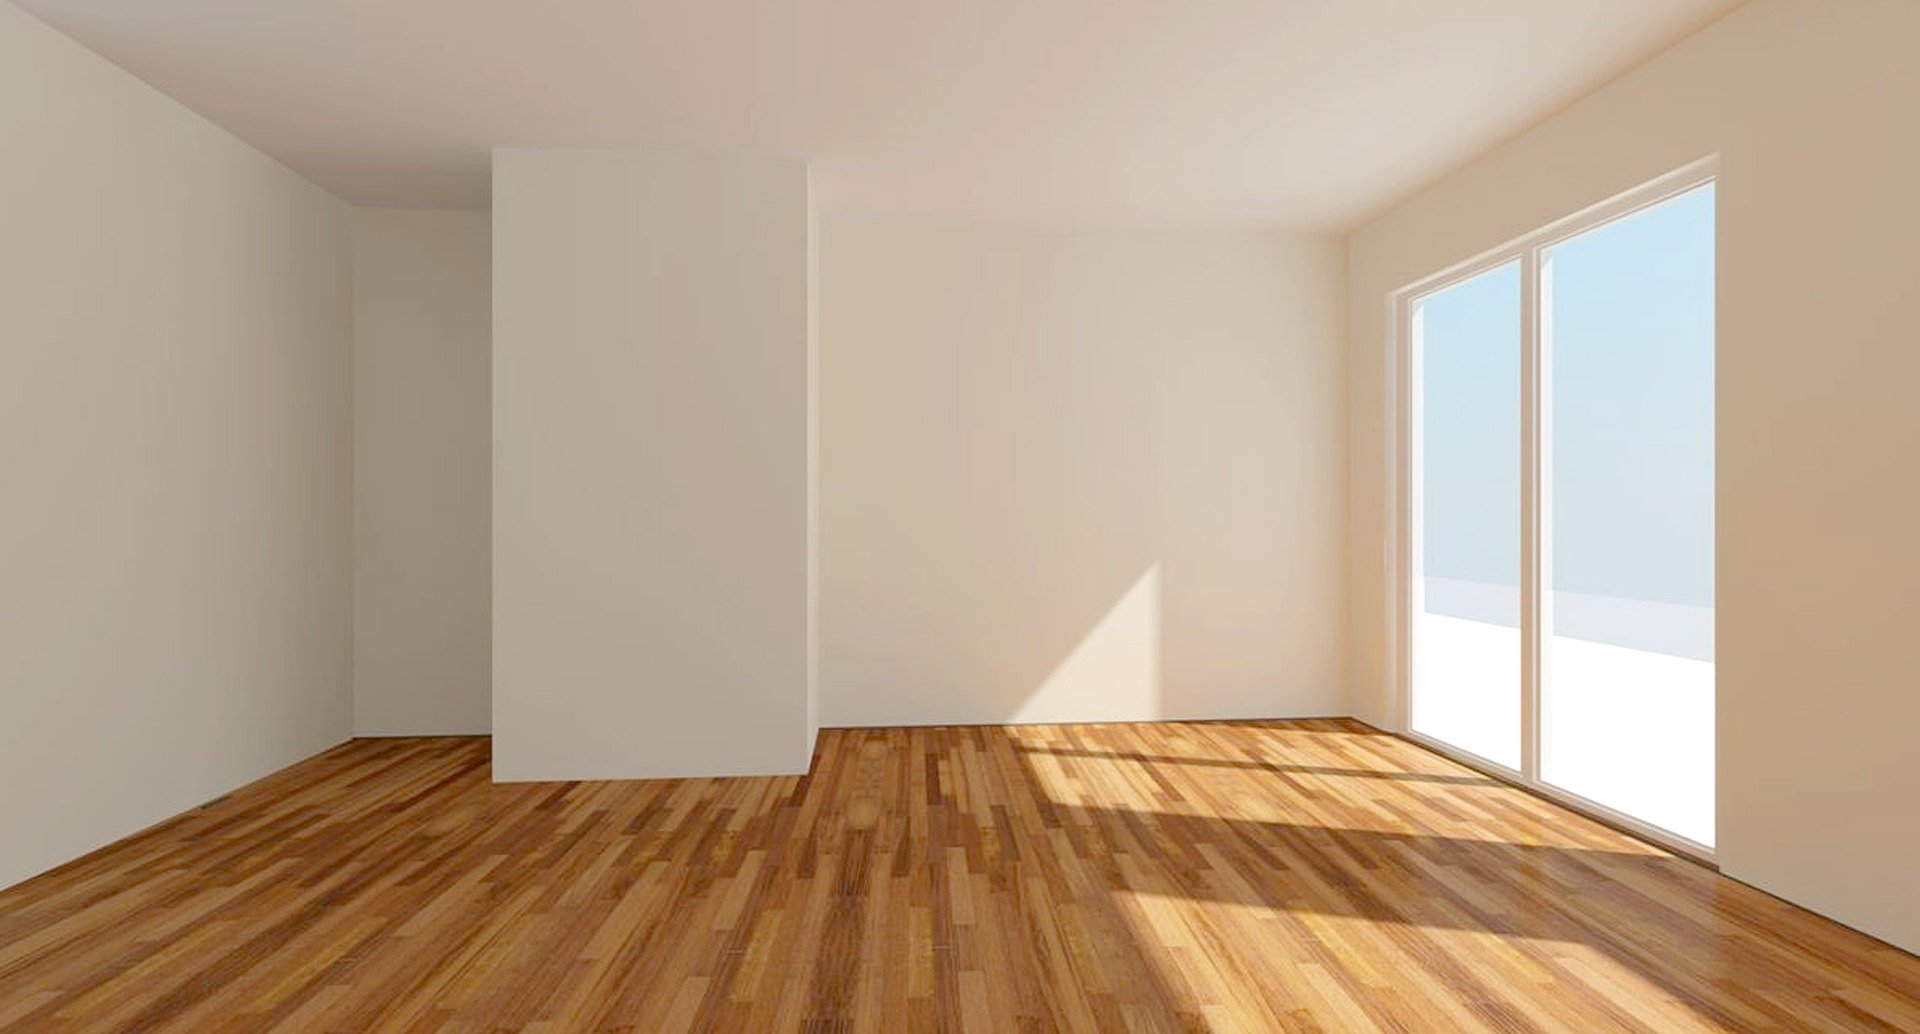 image showing an empty living room of a new home